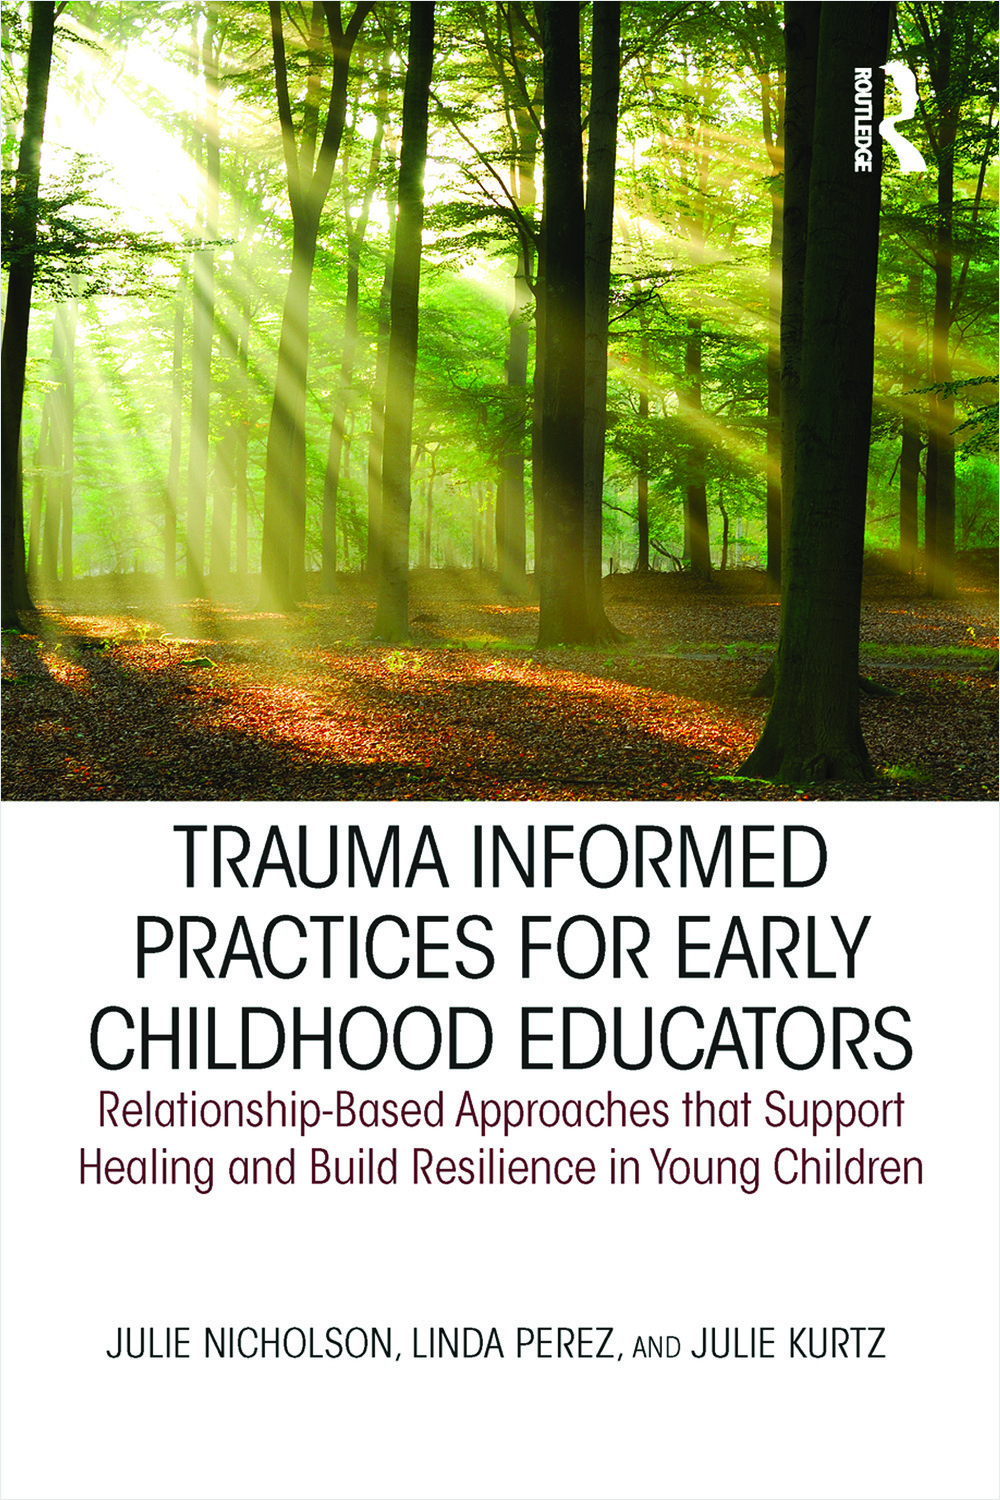 Trauma Informed Practices for Early Childhood Educators: Relationship-Based Approaches that Support Healing and Build Resilience in Young Children